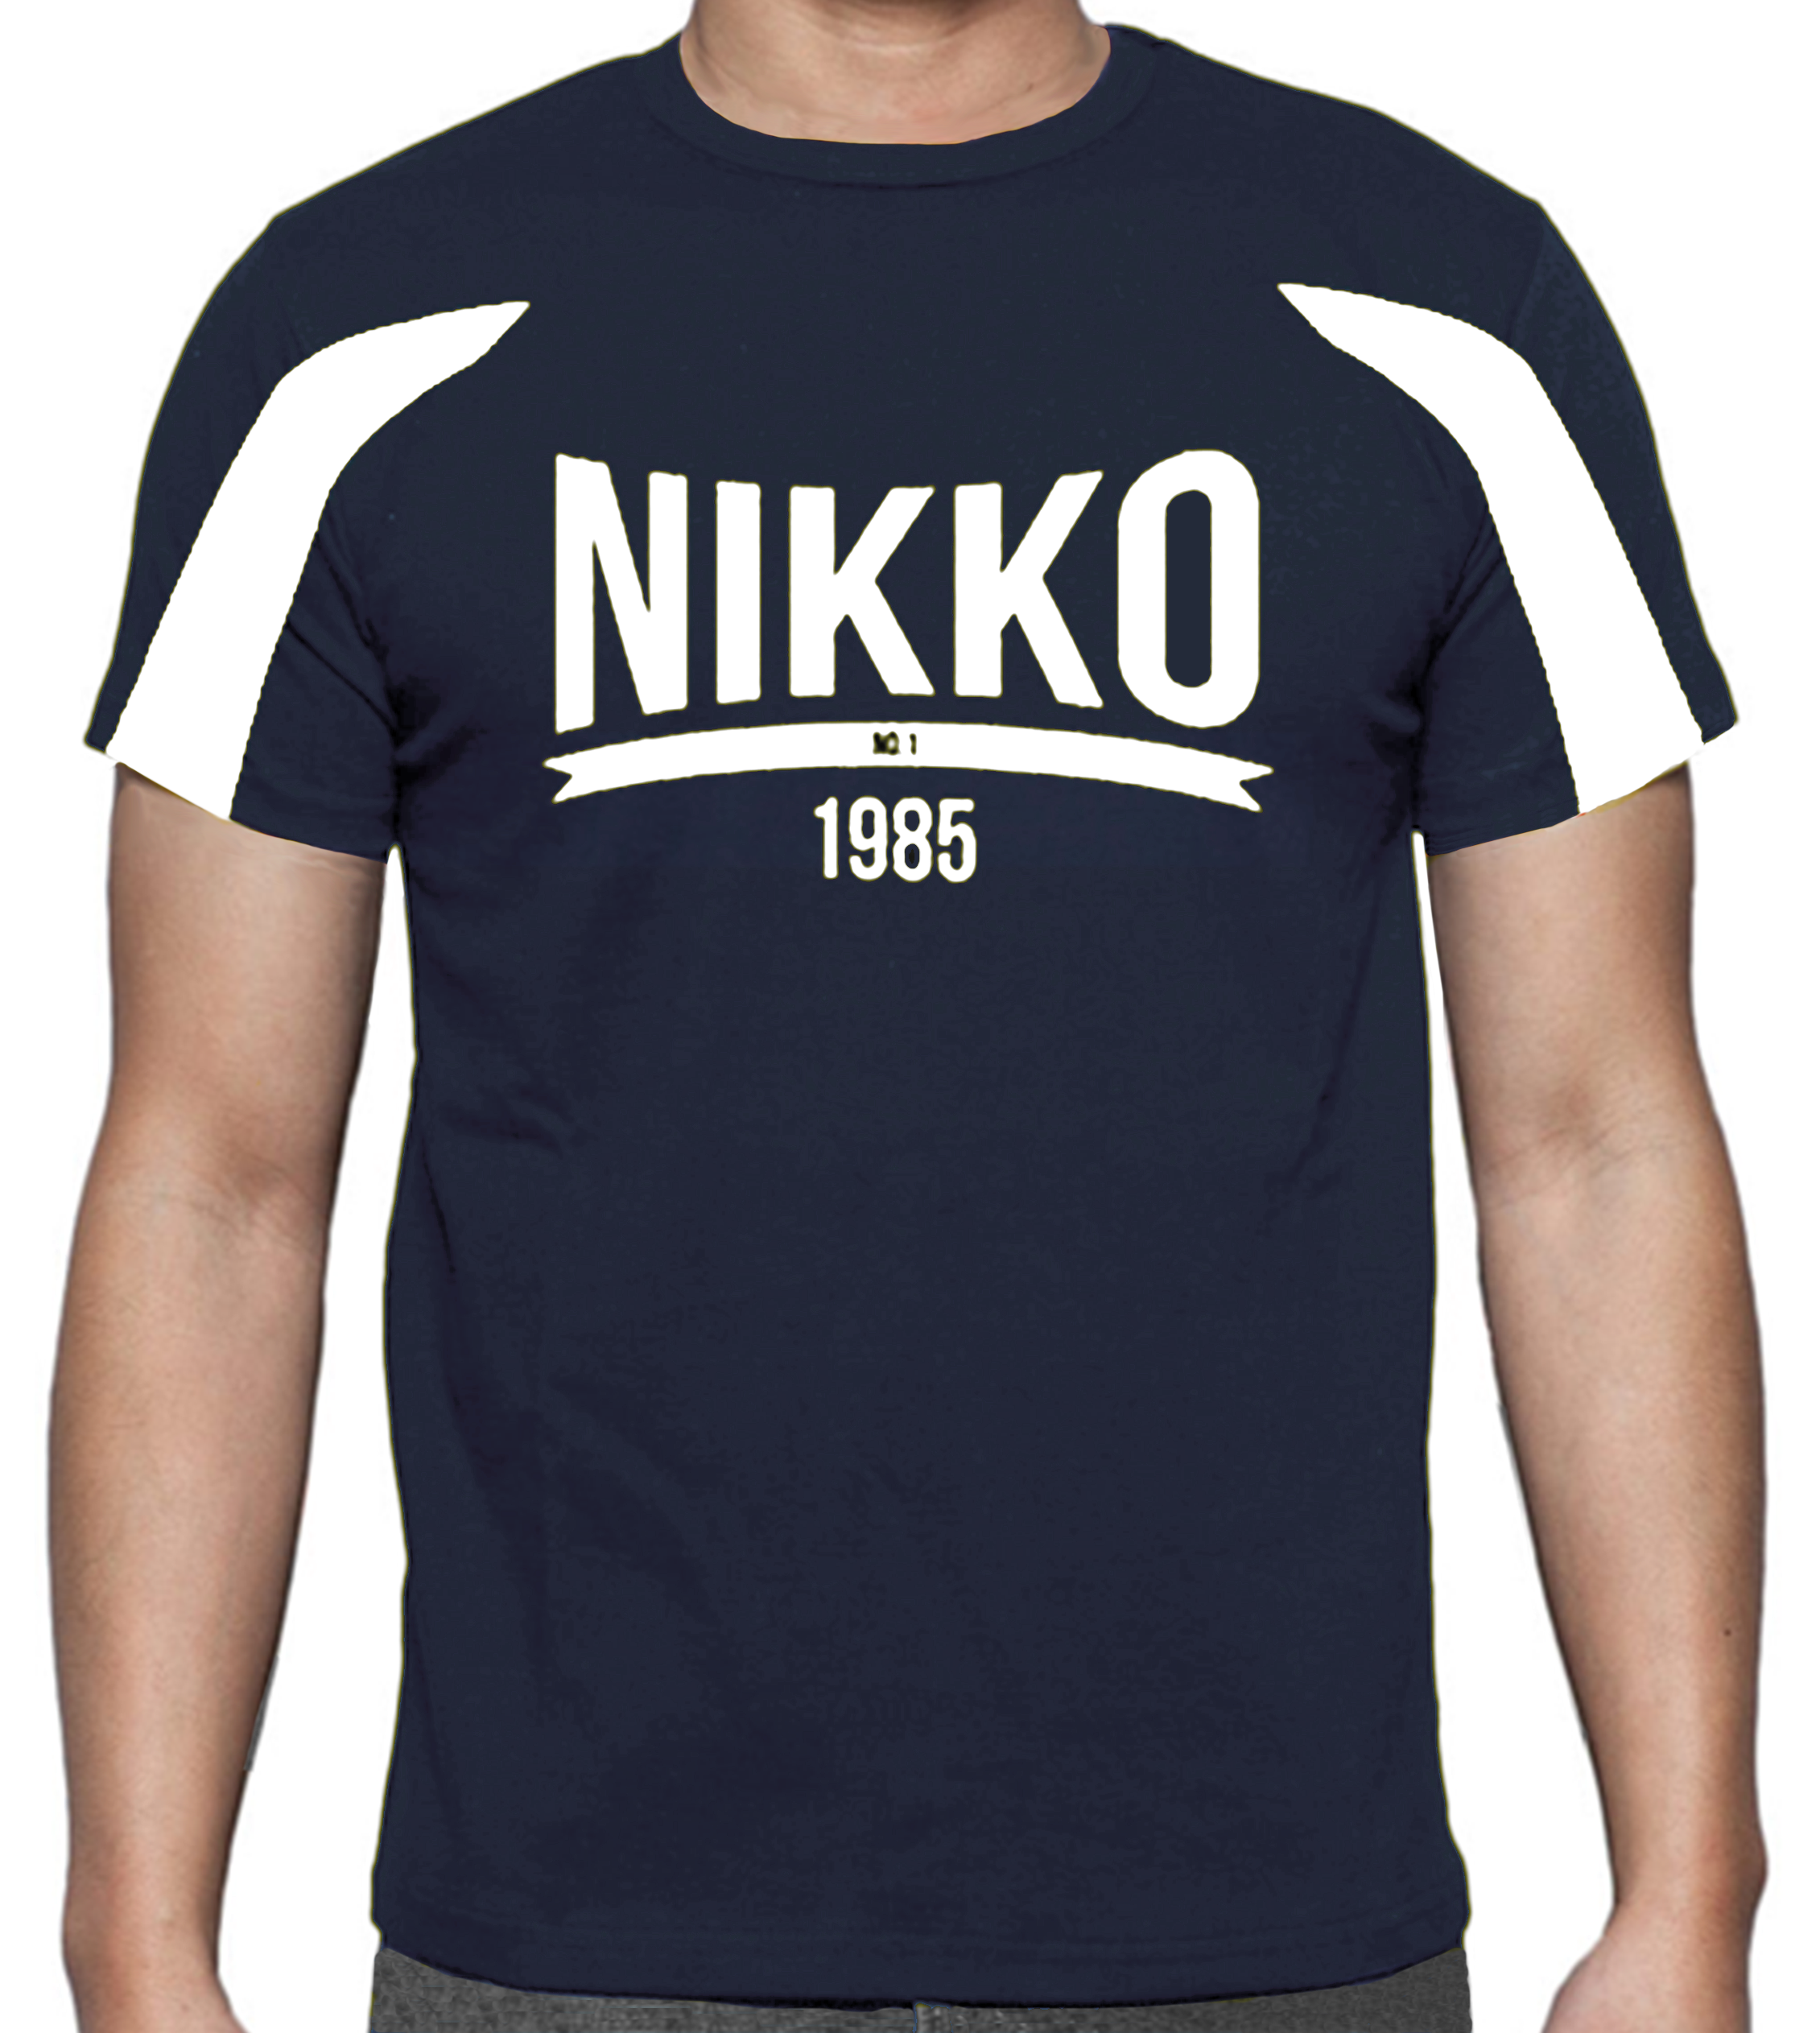 Nikko Dry Fit Two-Toned Blue